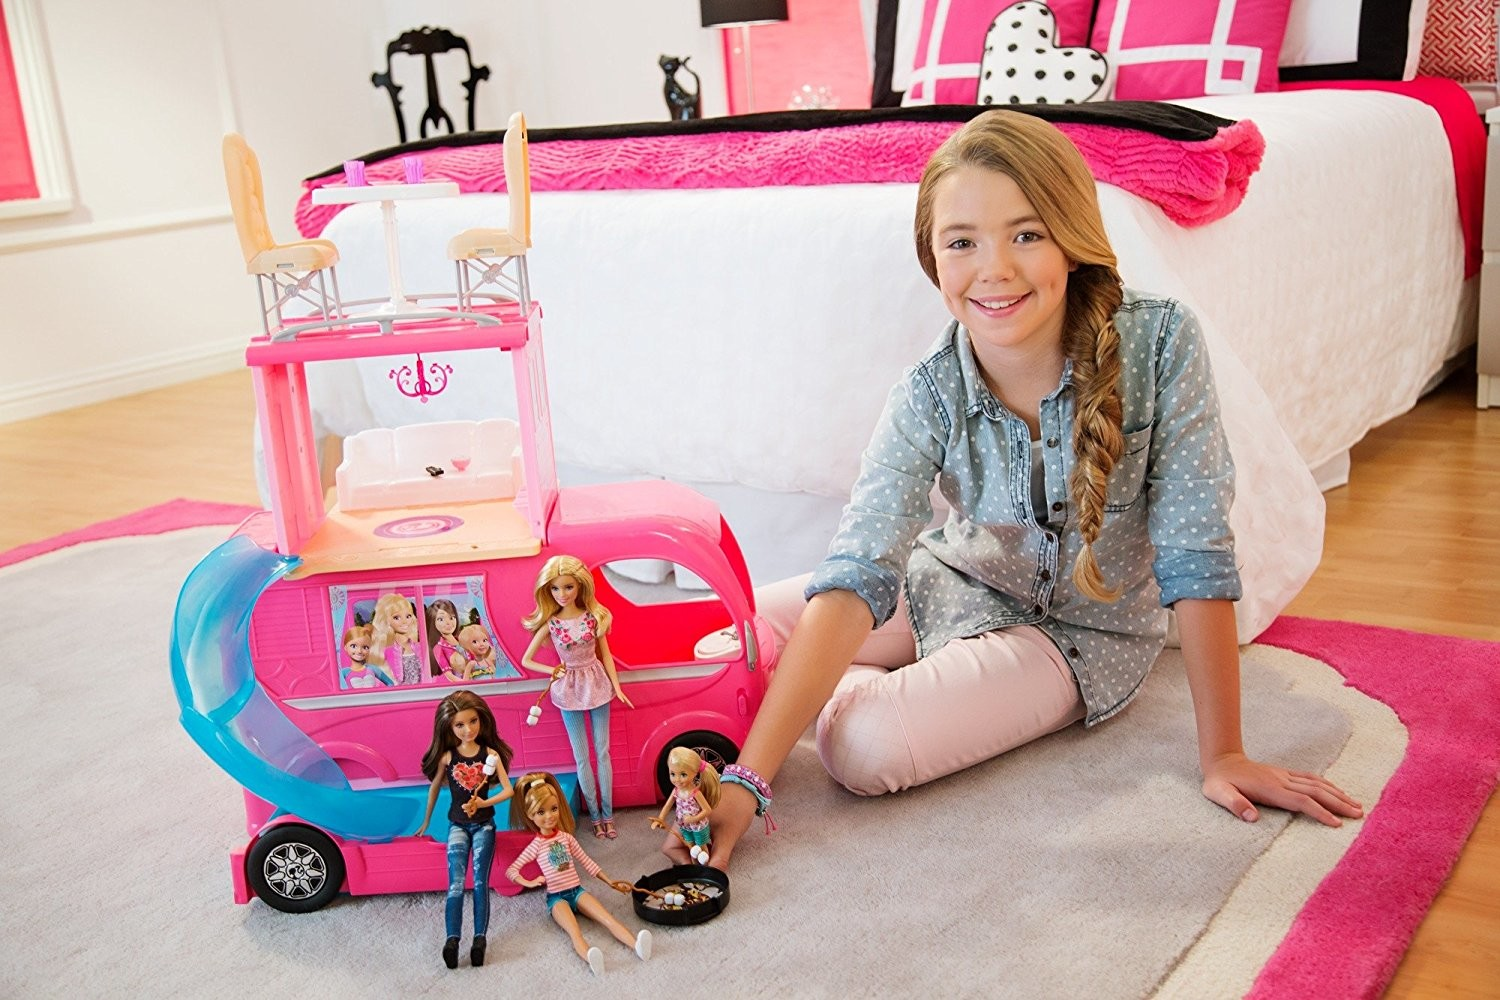 Barbie Superdivertida Superdivertida Barbie Autocaravana Barbie Autocaravana Barbie Autocaravana Autocaravana Superdivertida Autocaravana Superdivertida Barbie SGUpqMzVL